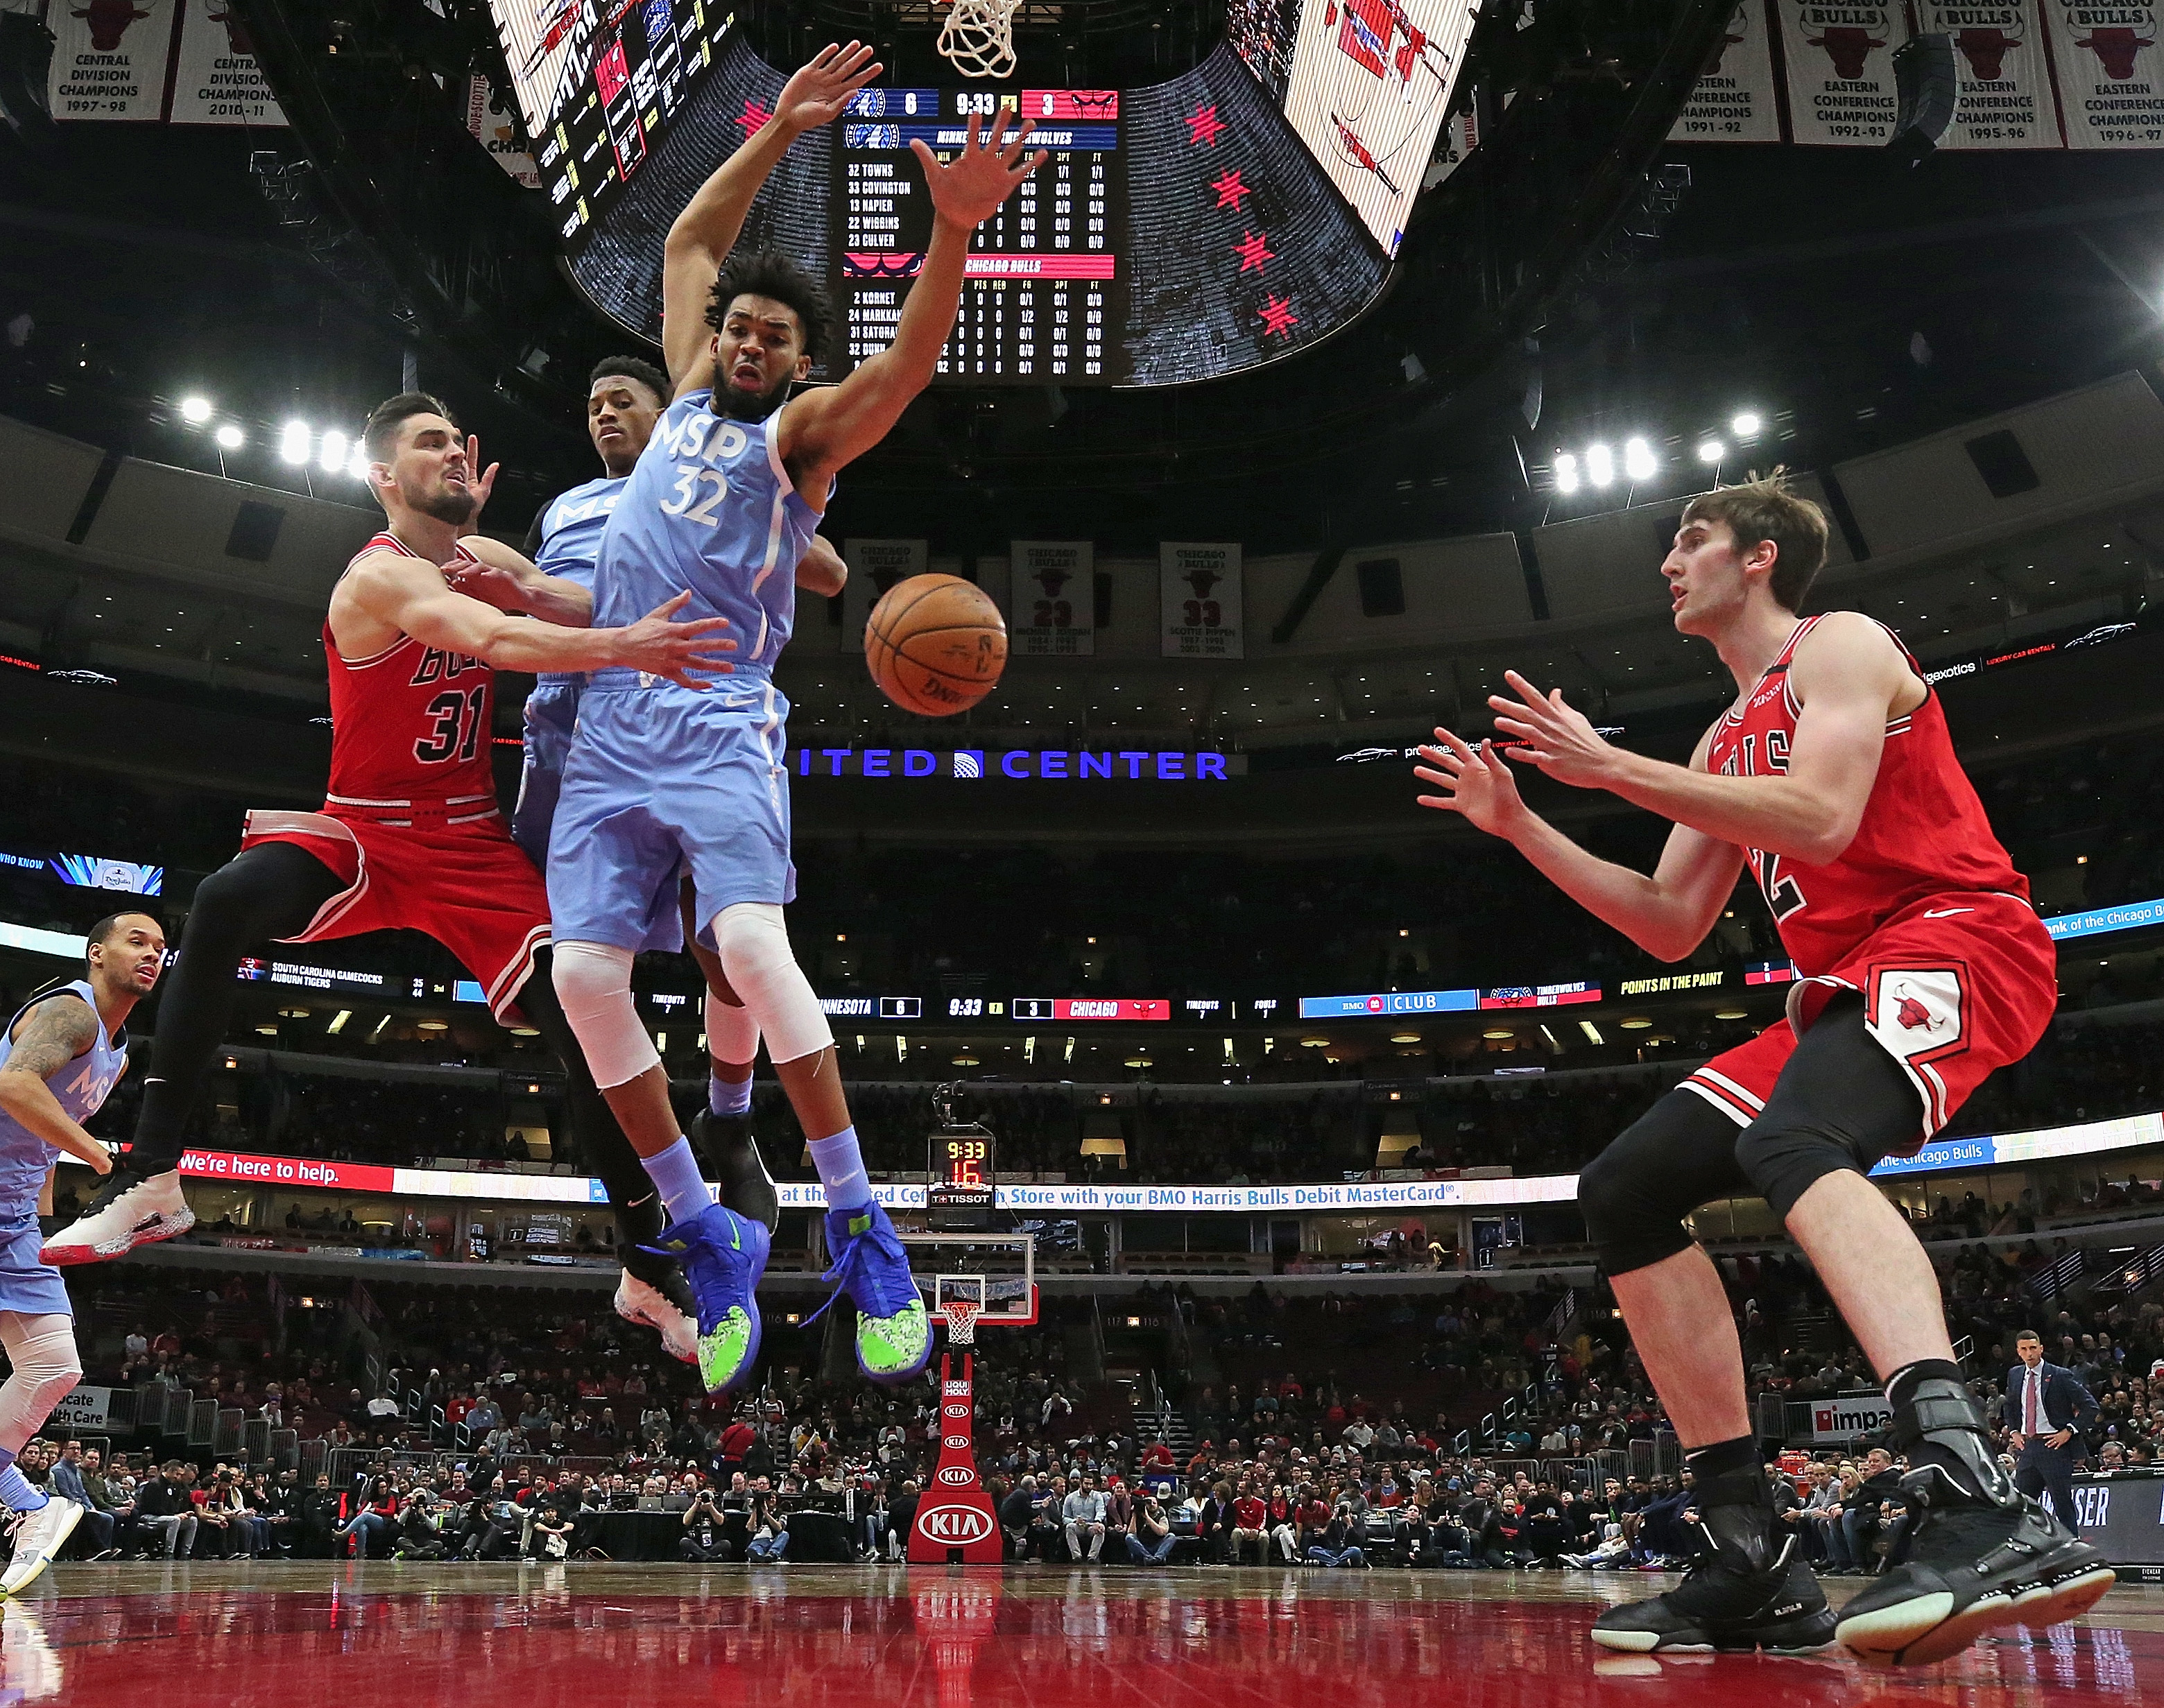 Bulls guard Tomas Satoransky (31) passes to Luke Kornet (2) for a basket in the Bulls' 117-110 victory over the Timberwolves on Wednesday night at the United Center.